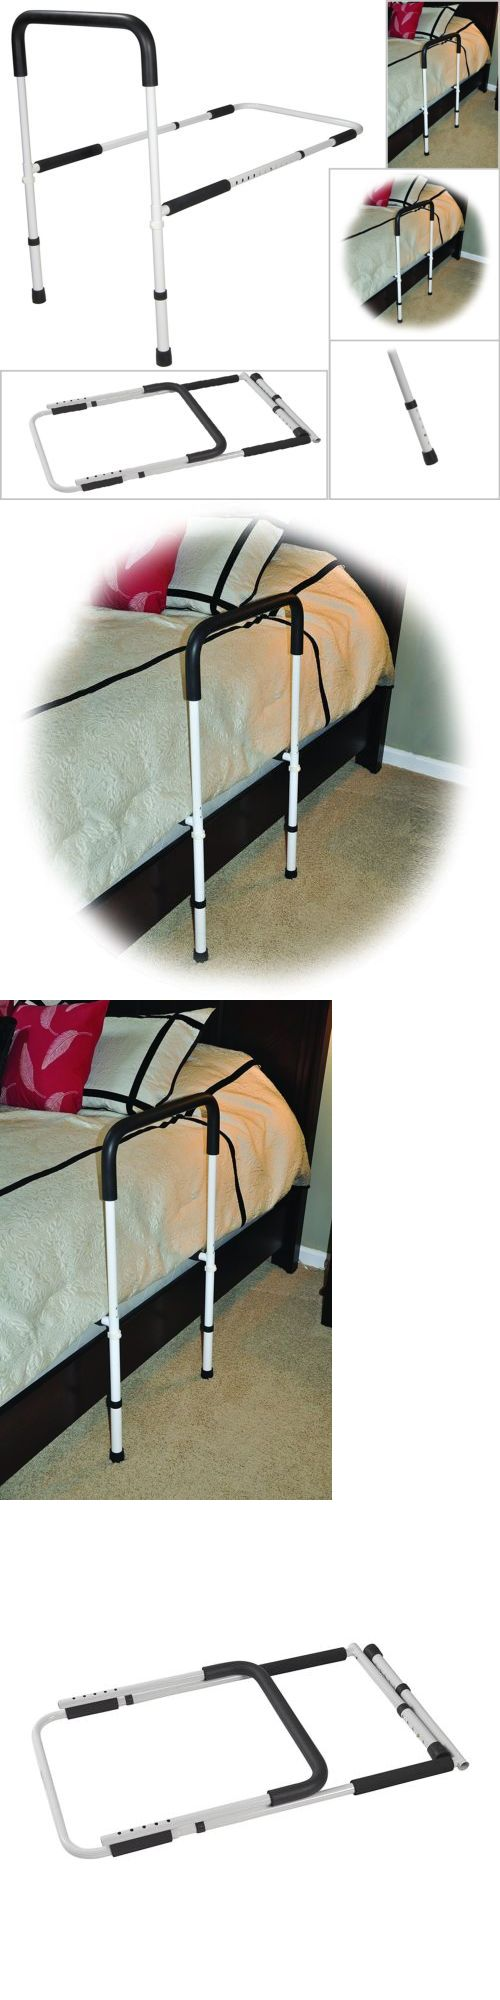 Handles and Rails: Bed Assist Handle White Adjustable Height ...